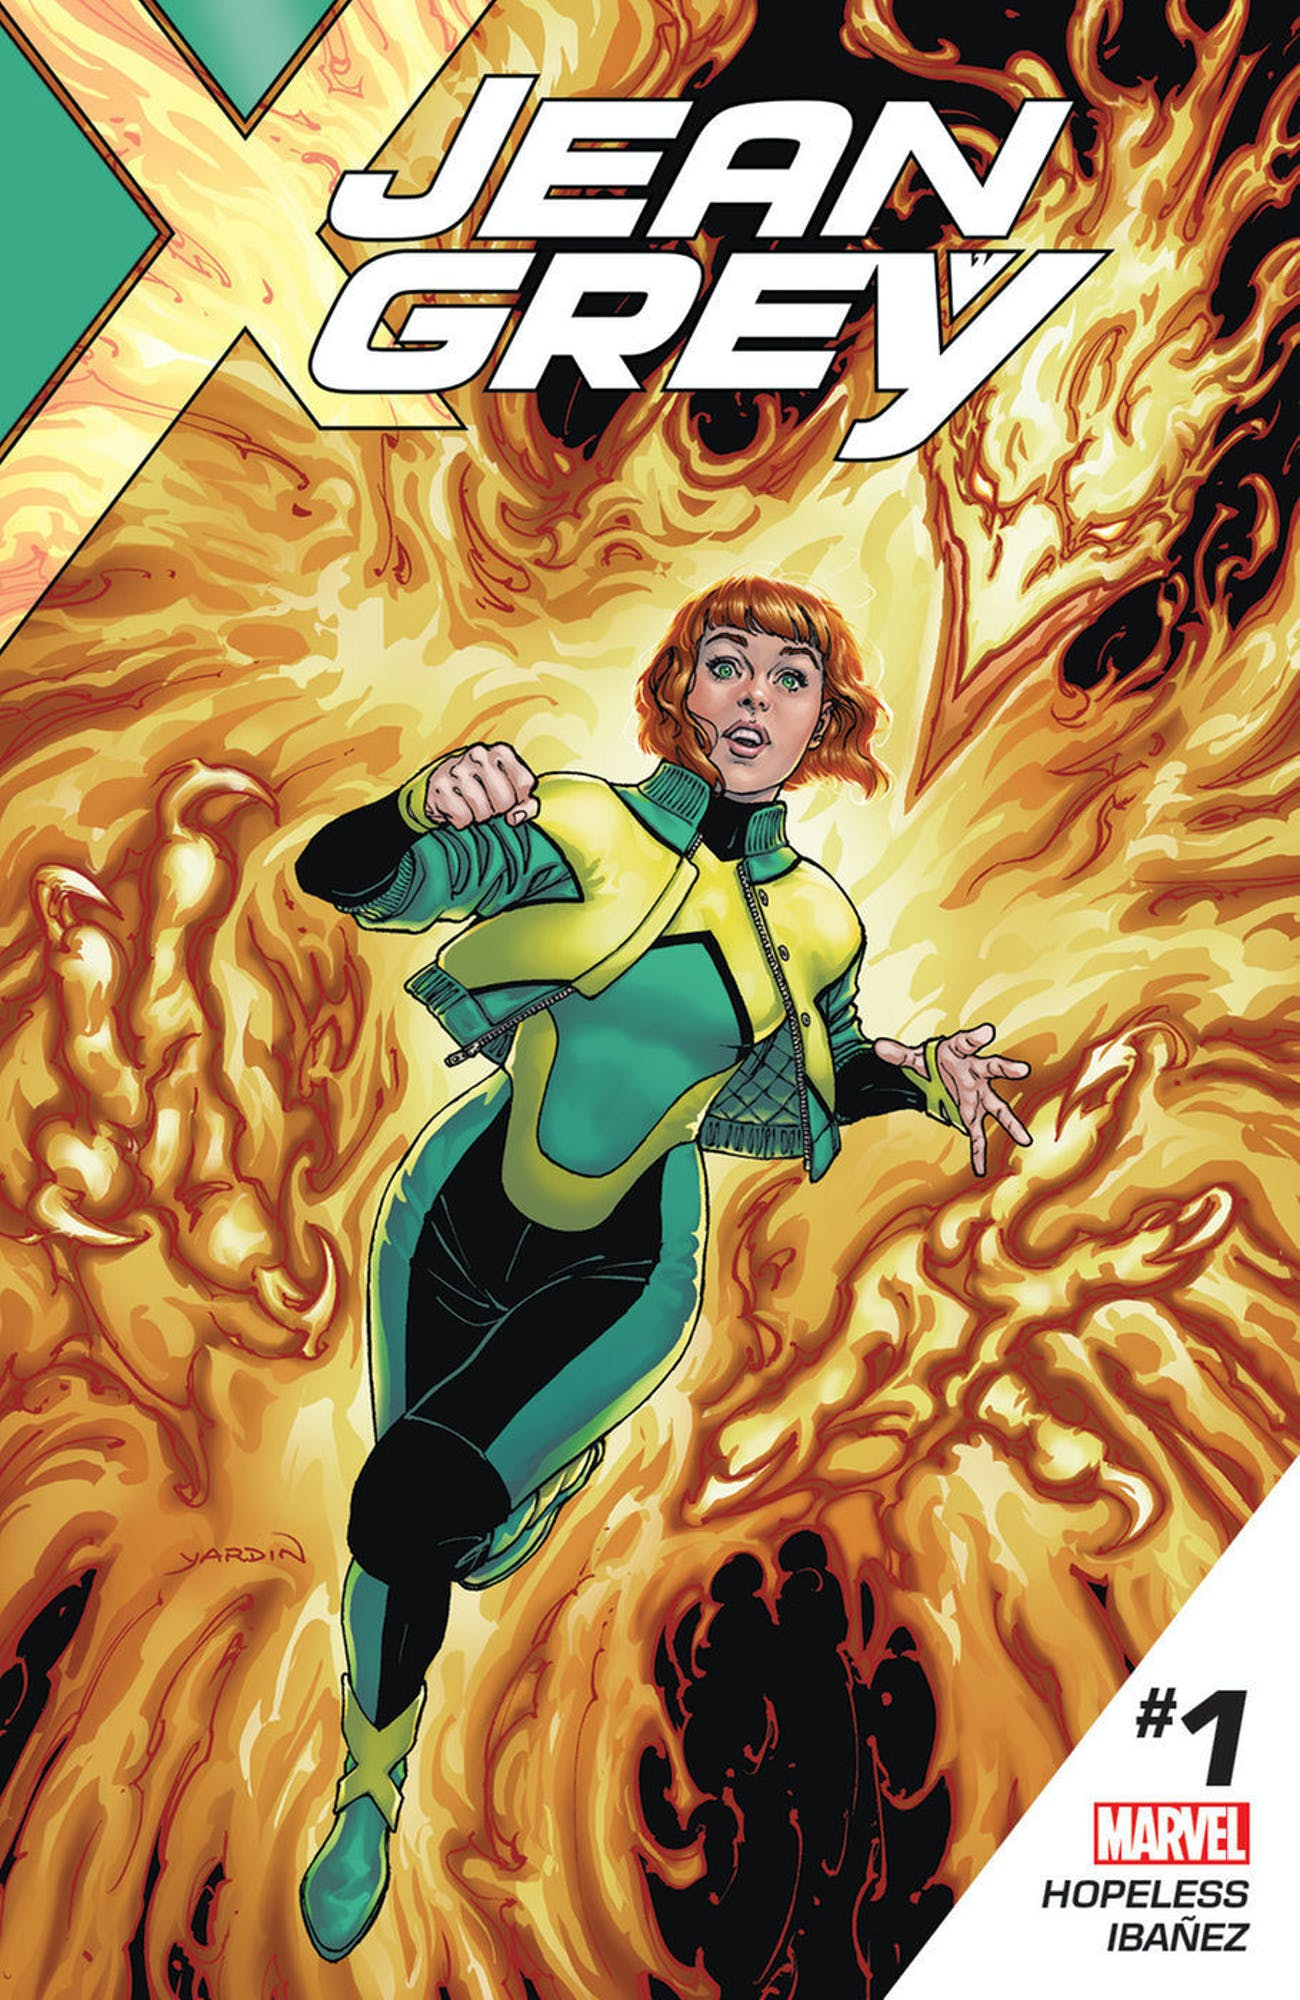 Cover for Jean Grey #1 from Marvel Comics